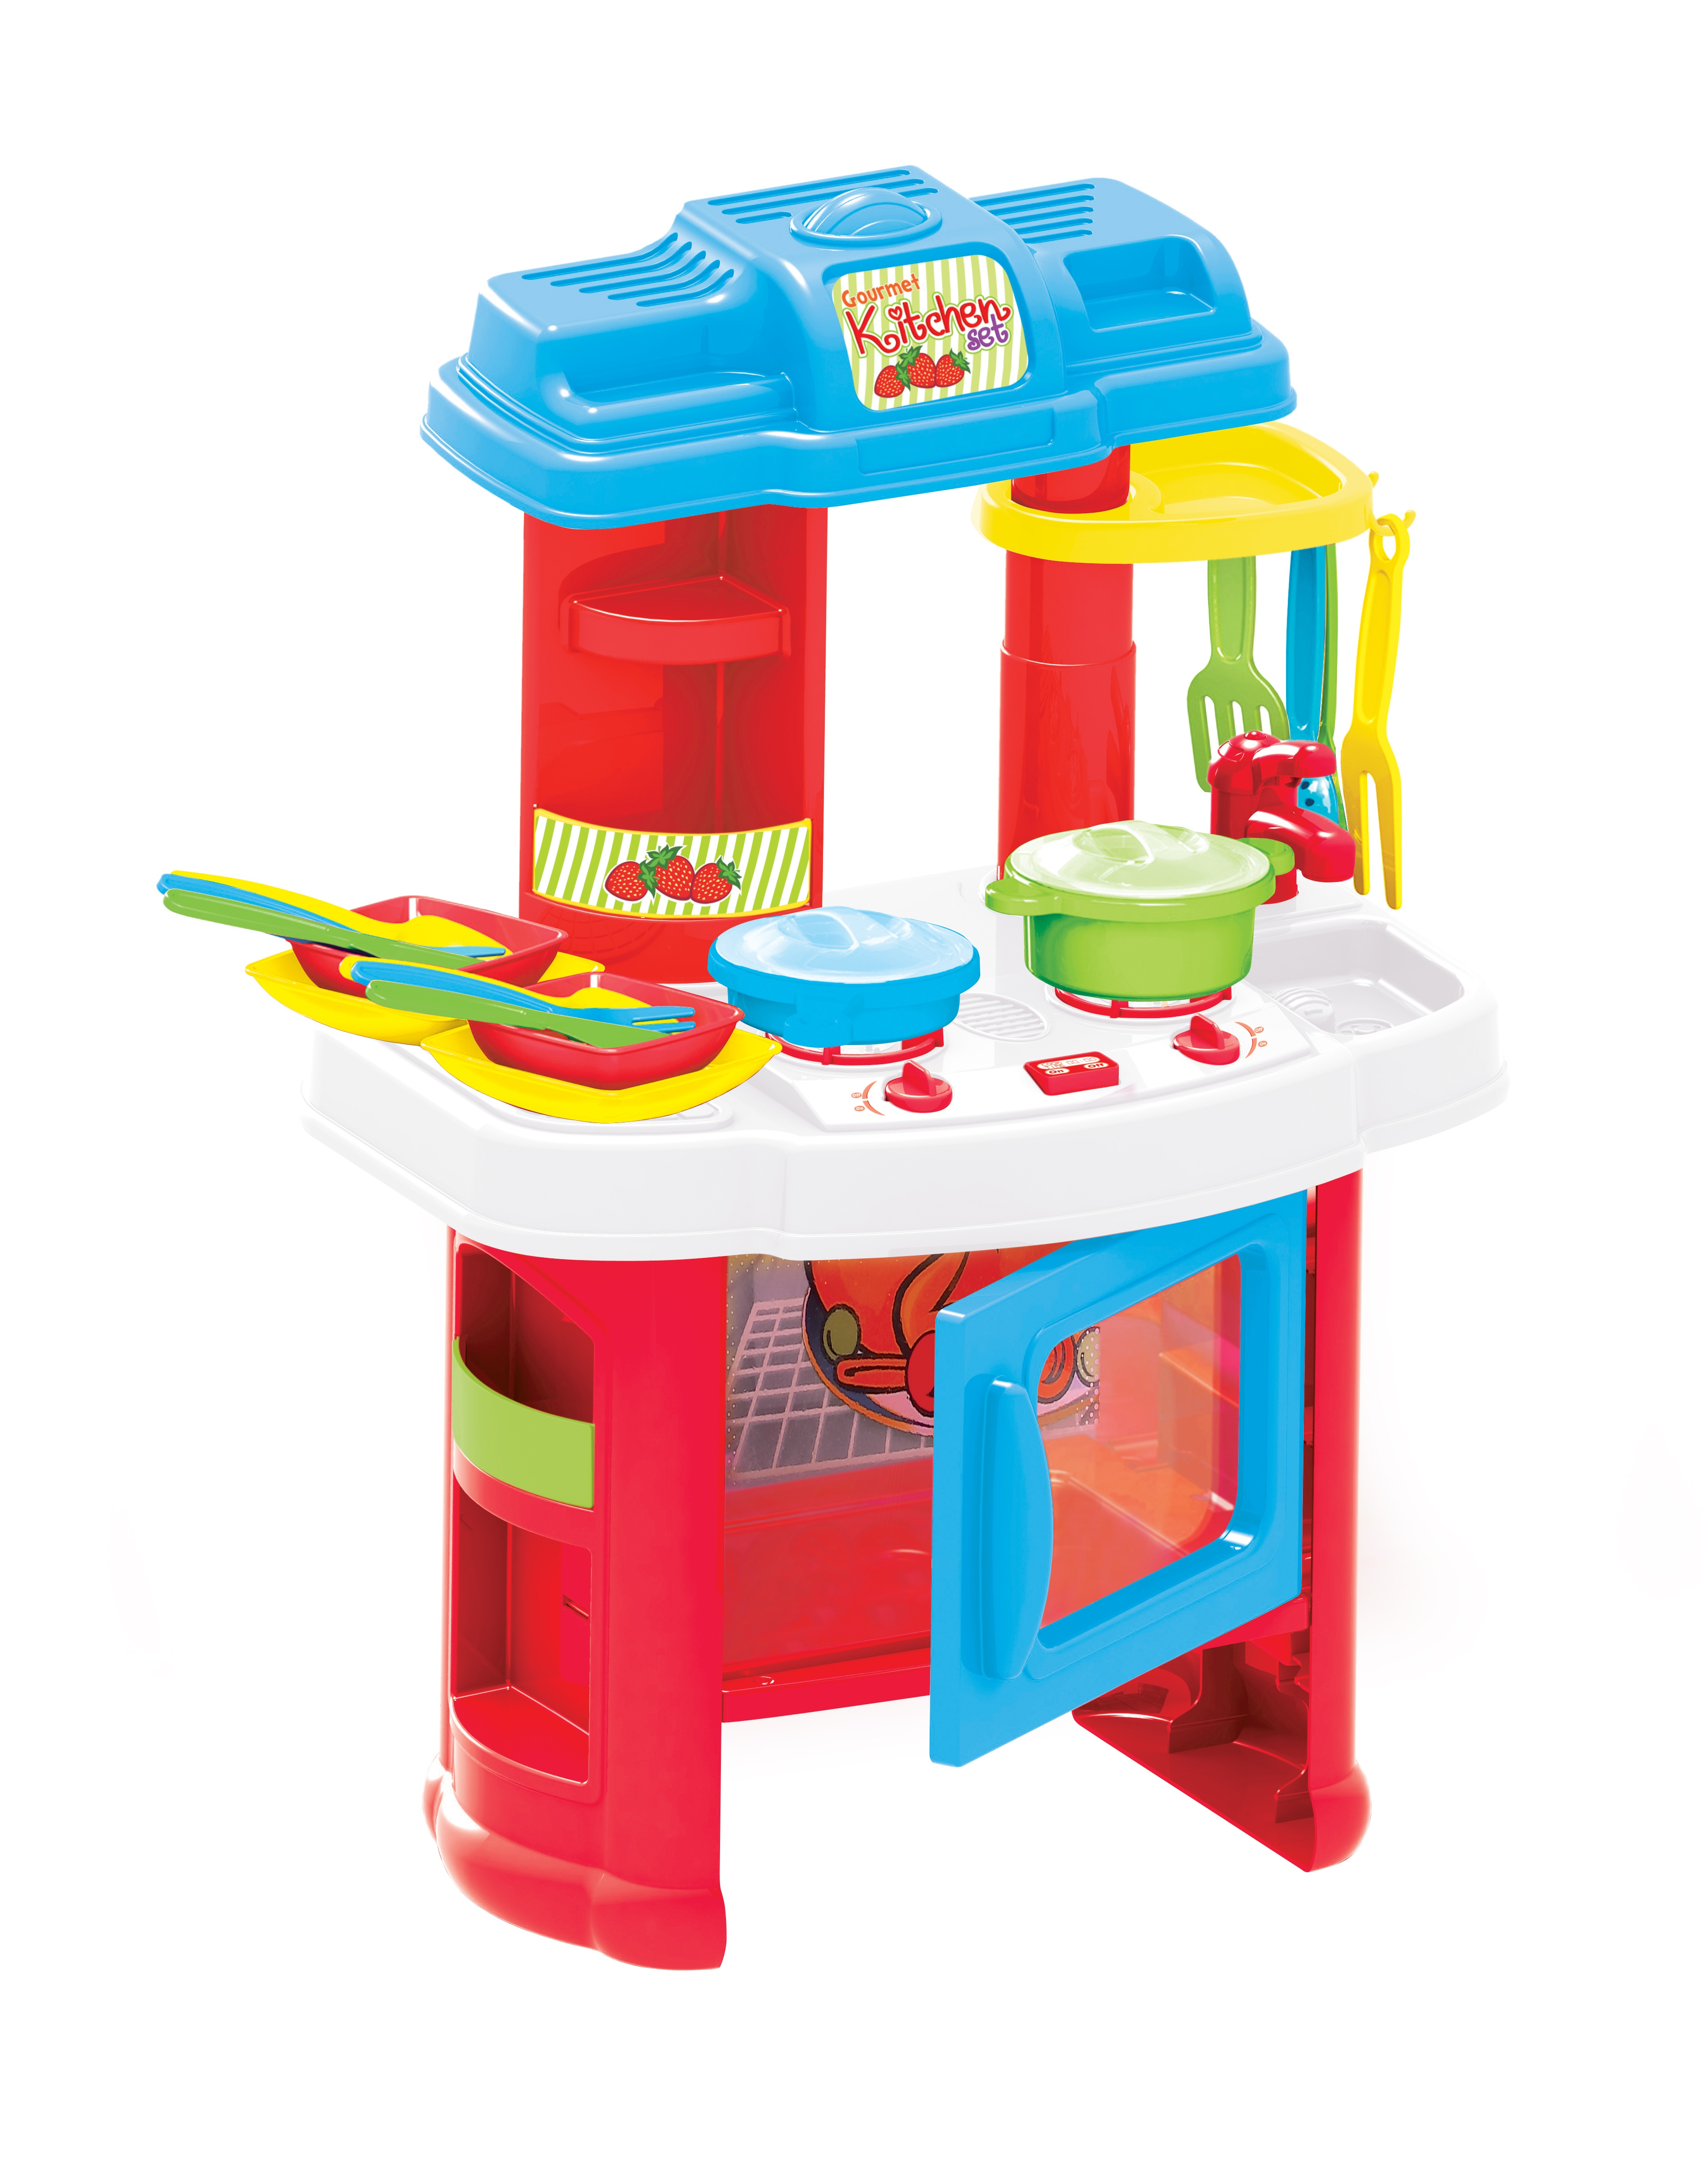 18 piece kitchen cooking children 39 s play set toy boys for Little boy kitchen set